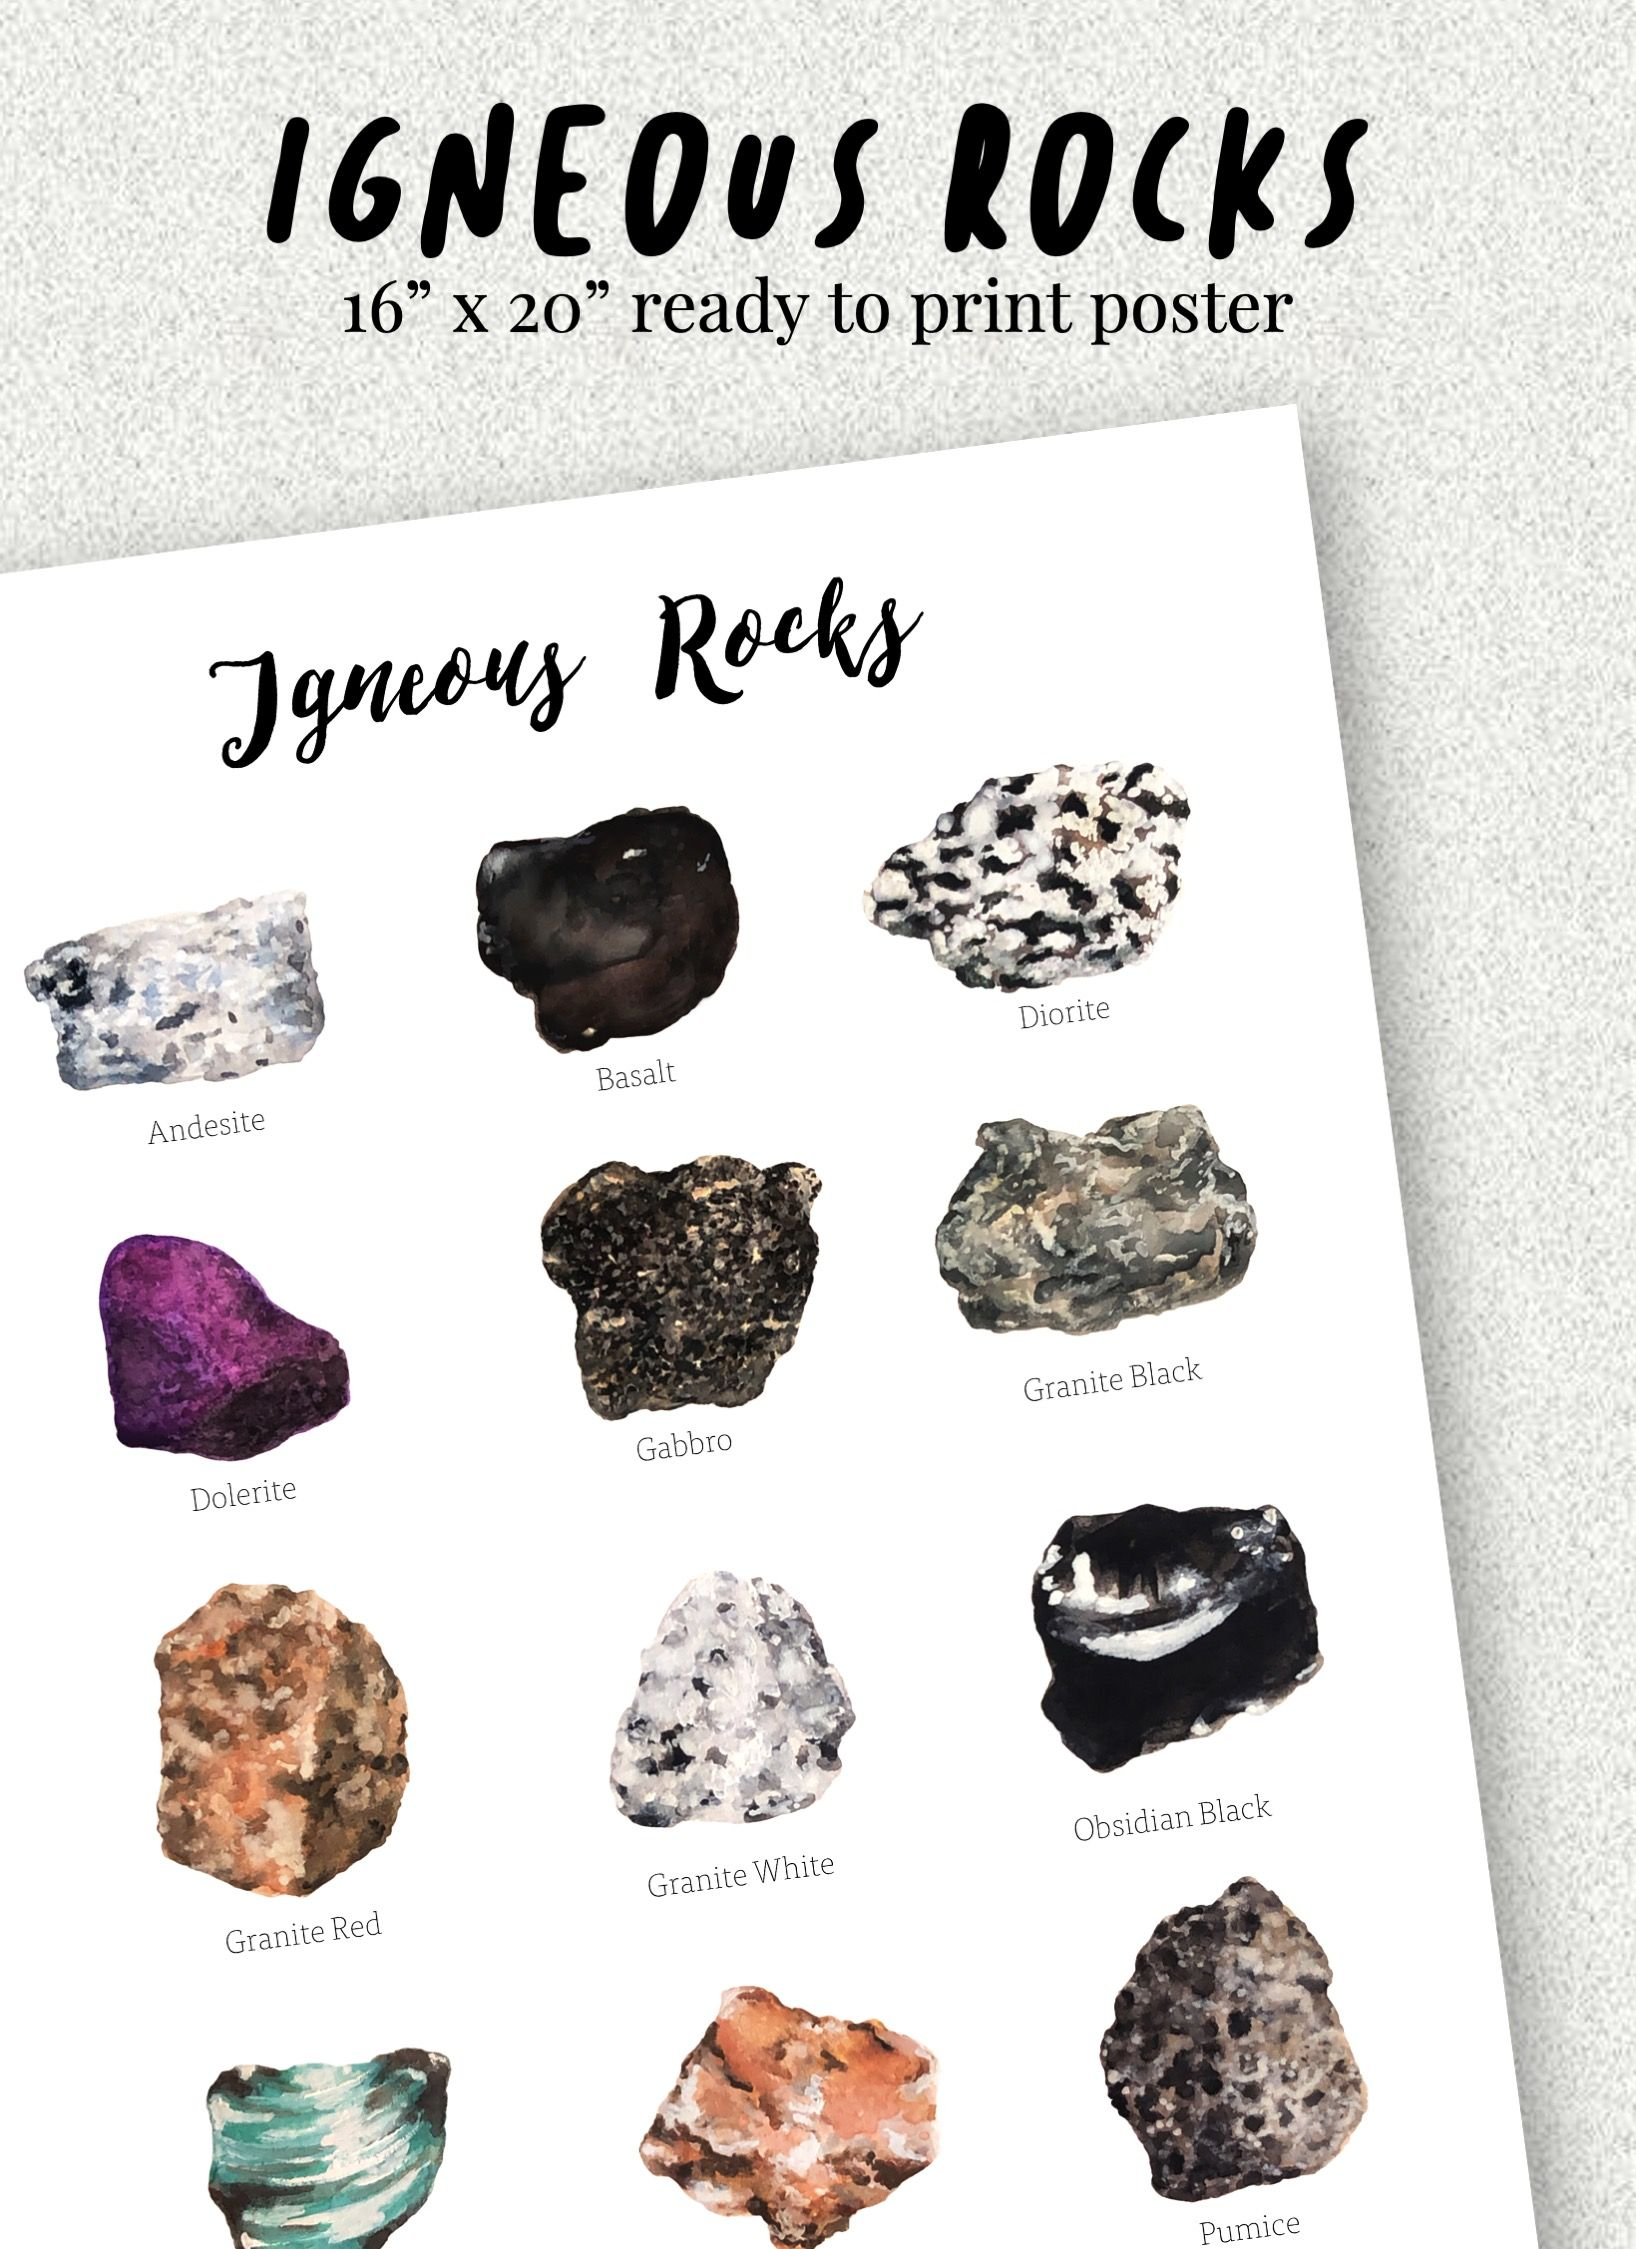 Watercolor Igneous Rocks Poster In 2020 Igneous Rock Igneous Rock Posters